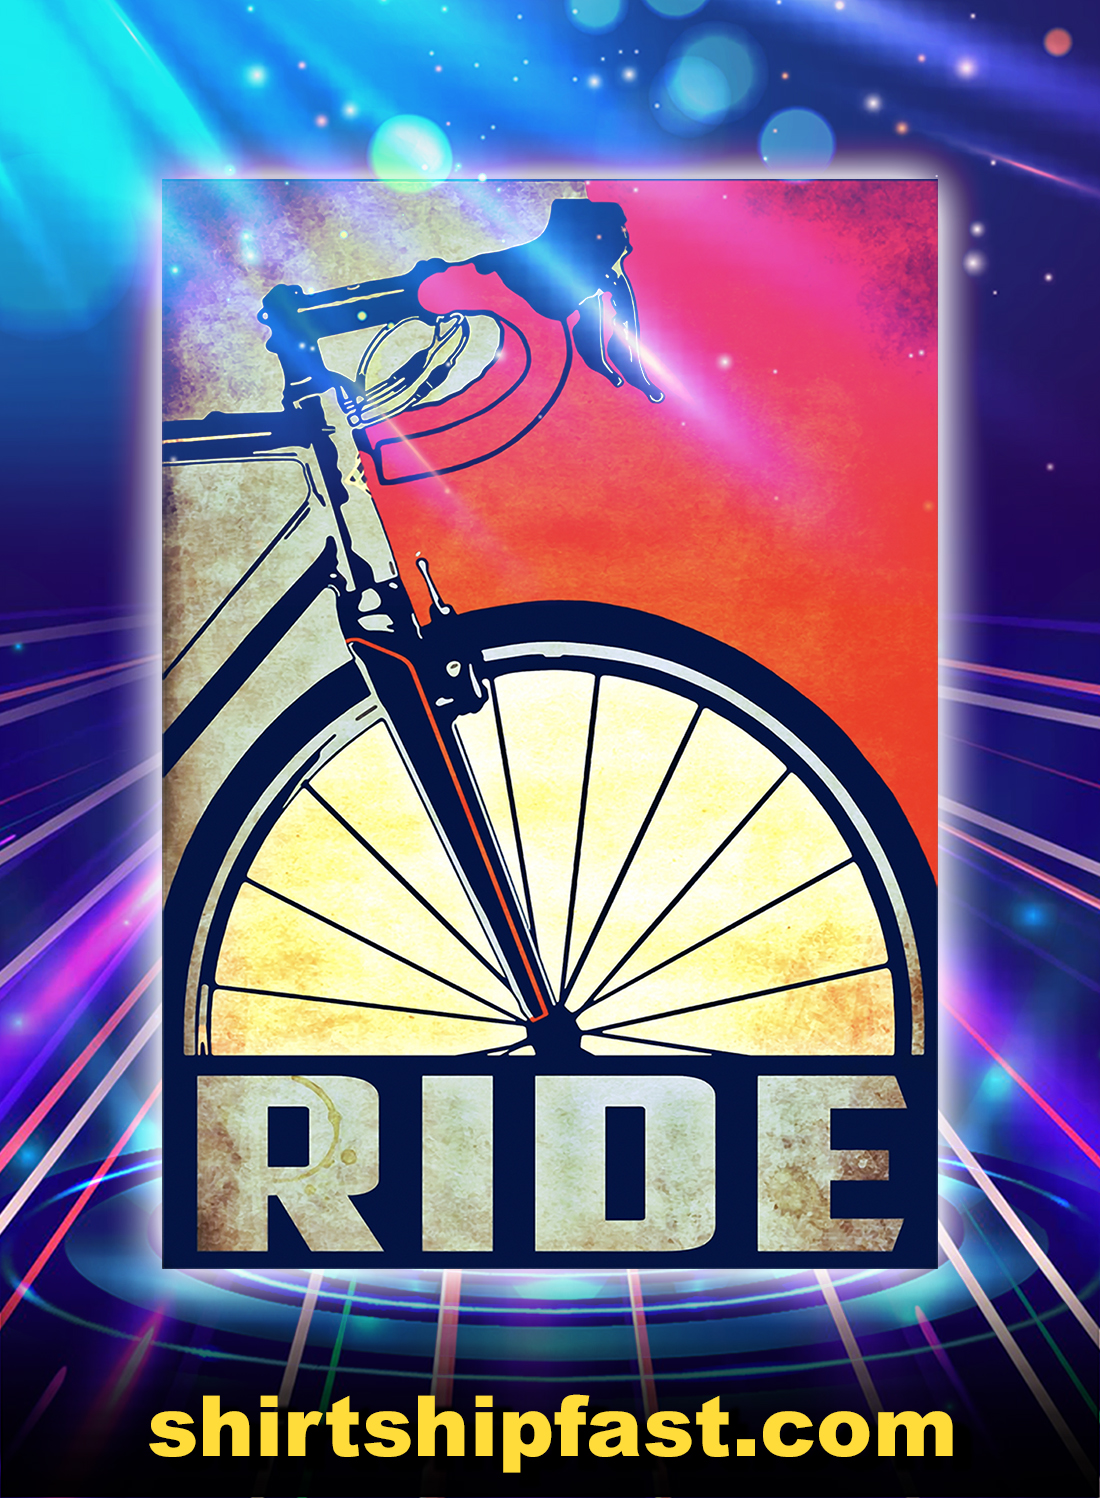 Cycling Bicycle ride poster